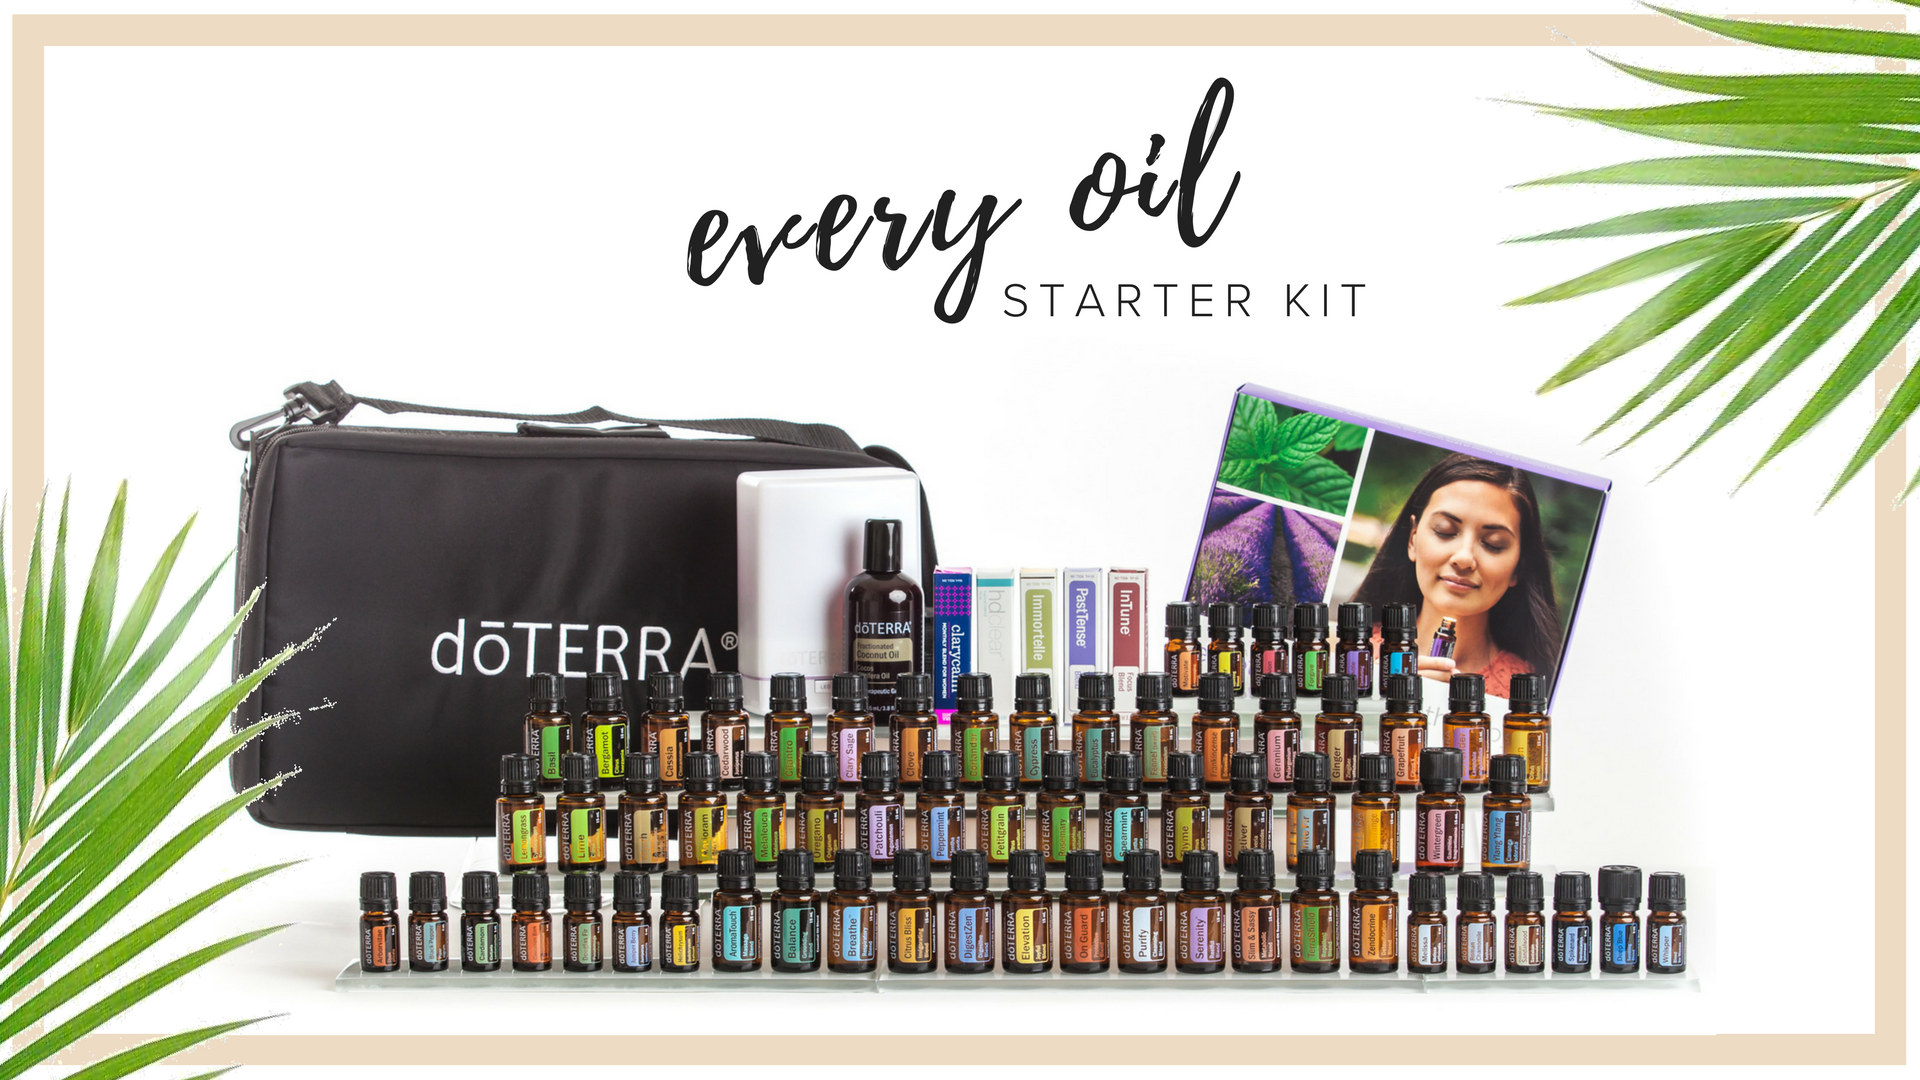 EVERY OIL KIT - $1,825   This kit Contains every single oil that doterra sources, so if you are one of those people who needs to have every single oil so you can hit the ground running and make all the blends you've been reading about, this is the kit for you. You will also receive an 8 hour diffuser and a travel case to hold all your precious oils.   Retail Cost $2,433. Wholesale Kit Price $1,825. $600 in Savings plus you're eligible to receive an additional $200 in product credits when you place your 100 pv Loyalty Rewards order the following month and you jump on the Fast track at 20% rebate on loyalty orders.  all new memberships include Exclusive aila love welcome gifts, a personal consultation with maile, ongoing education opportunities & a support community.